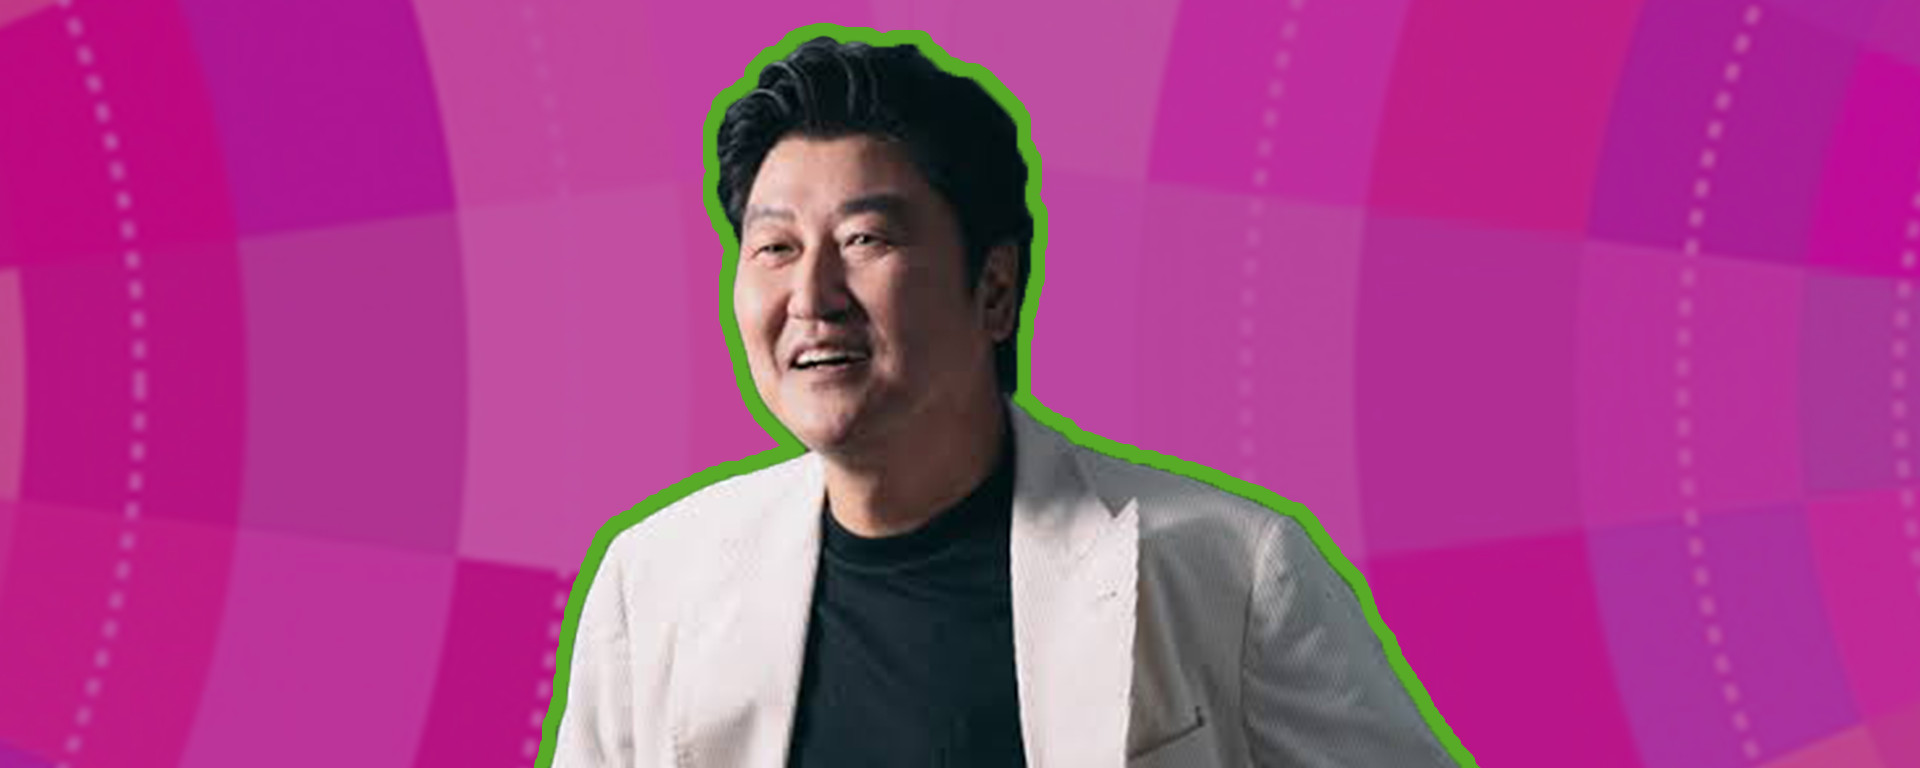 Song Kang Ho Tribute The Male Muse Of South Korea S Most Prolific Directors By The Pop Blog Medium